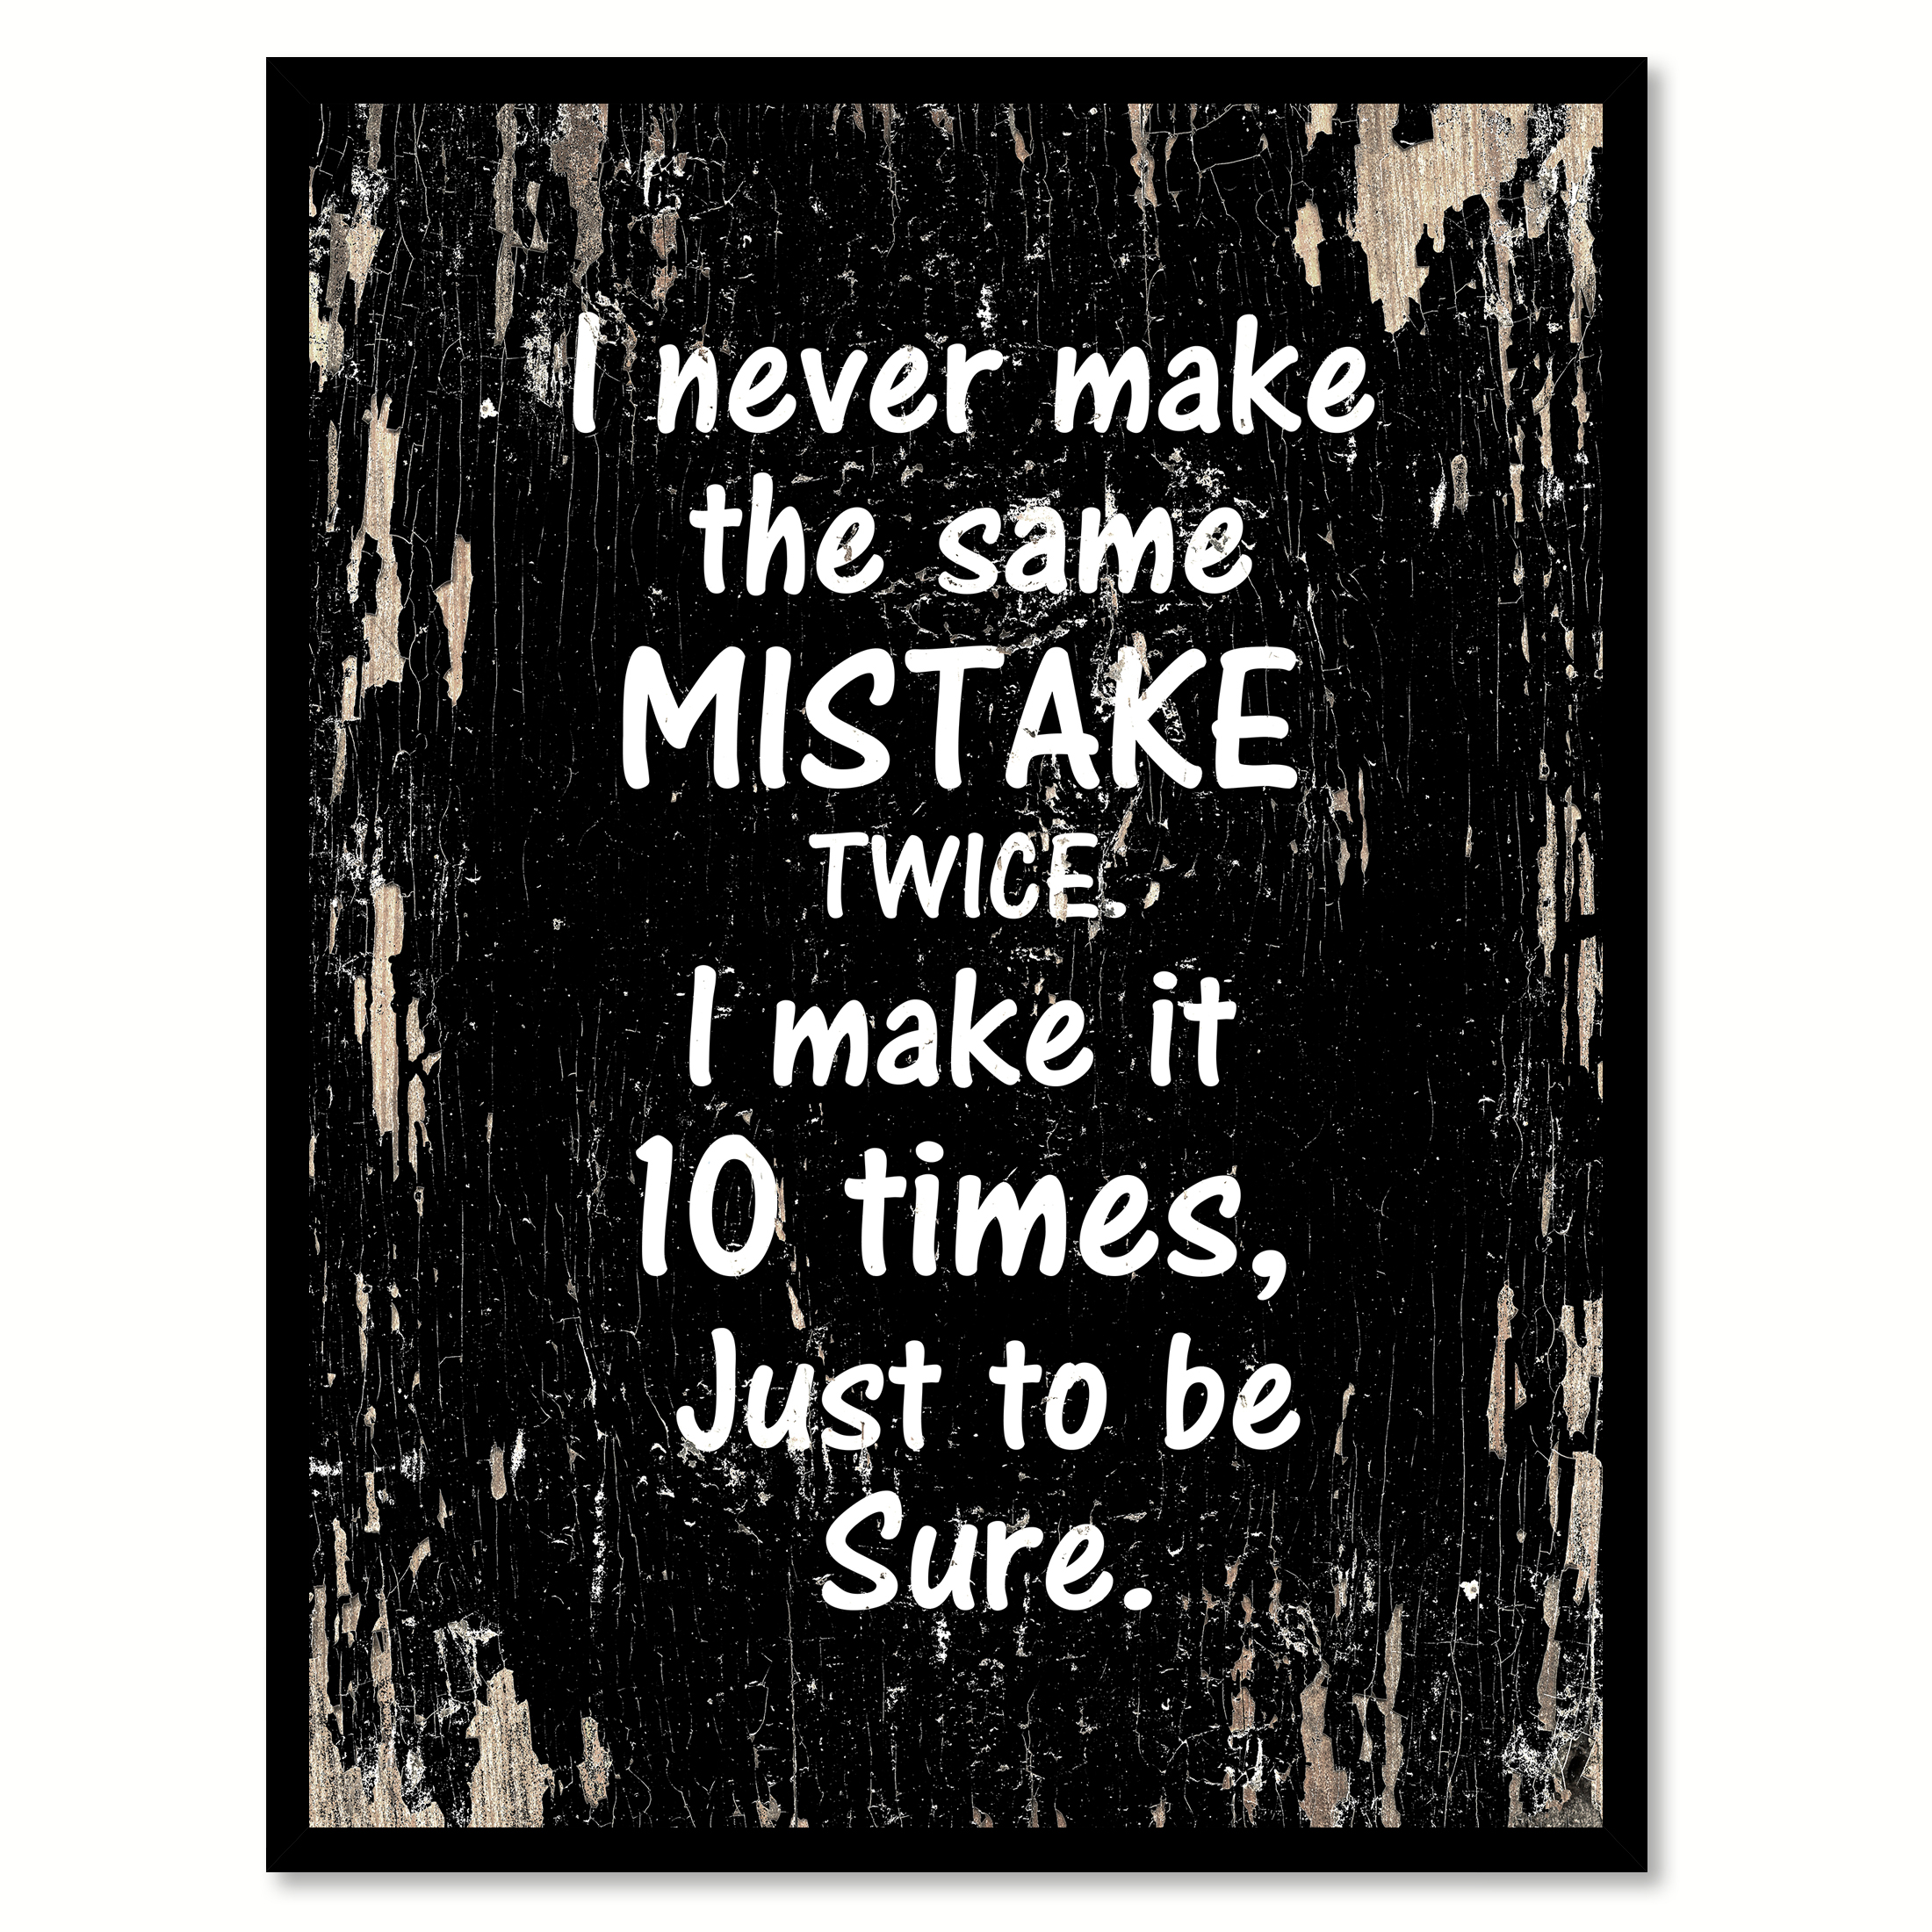 Making The Same Mistake Twice Quotes: I Never Make The Same Mistake Twice I Make It 10 Times